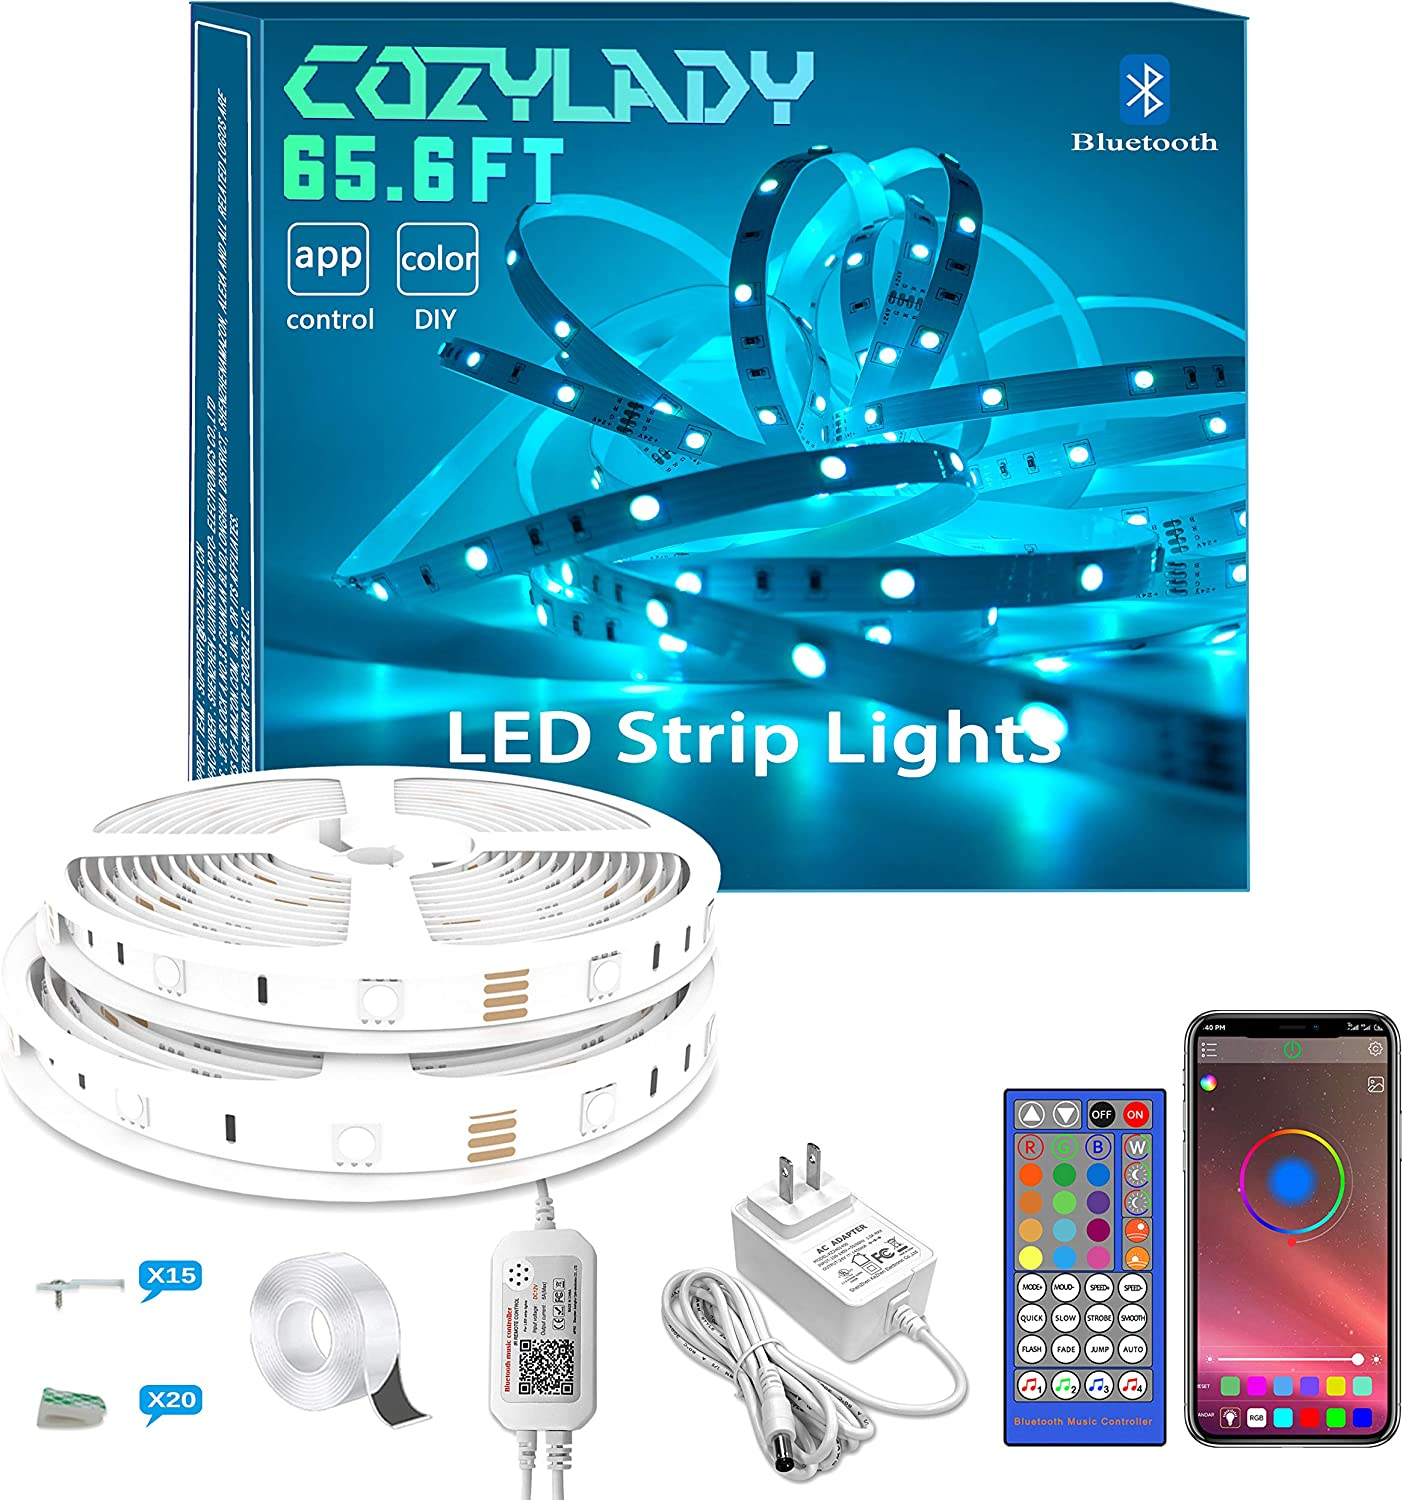 Bluetooth LED Strip Lights 65.6FT - Cozylady LED Light Strip Controlled by Smart Phone APP- Music Sync LED Lights for Bedroom Aesthetic, Room Decor